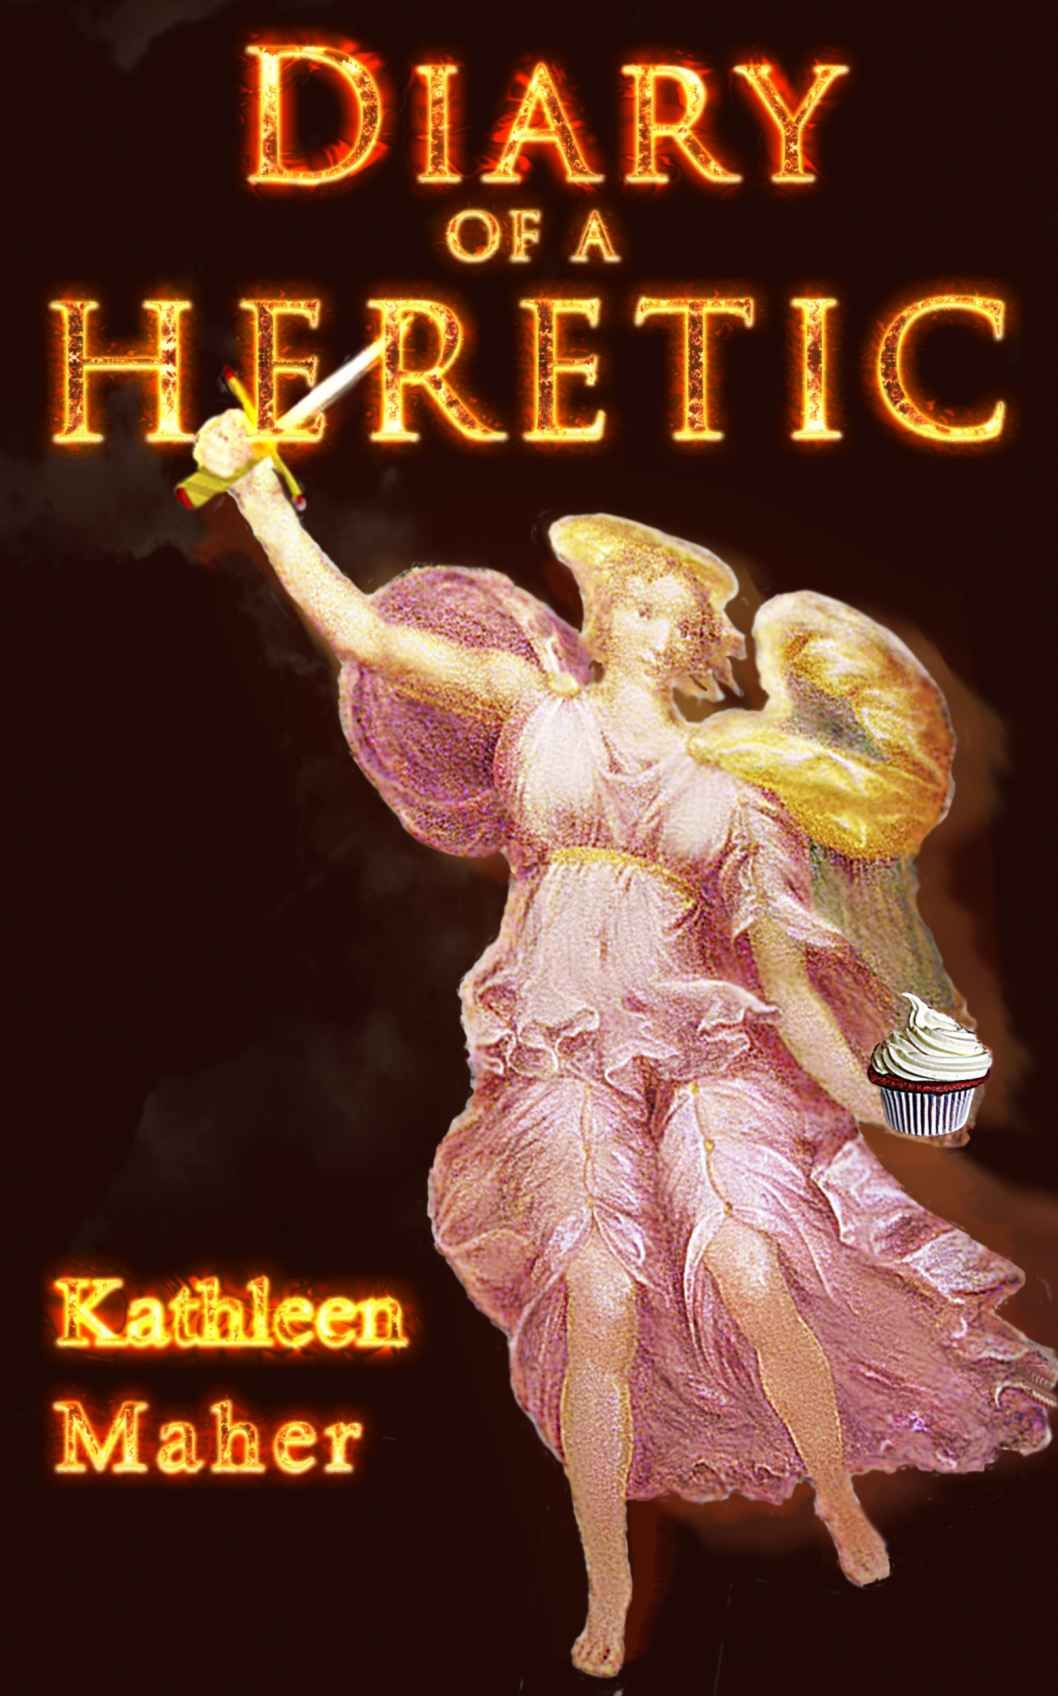 Diary of a Heretic - Kindle edition by Kathleen Maher. Literature & Fiction Kindle eBooks @ Amazon.com.